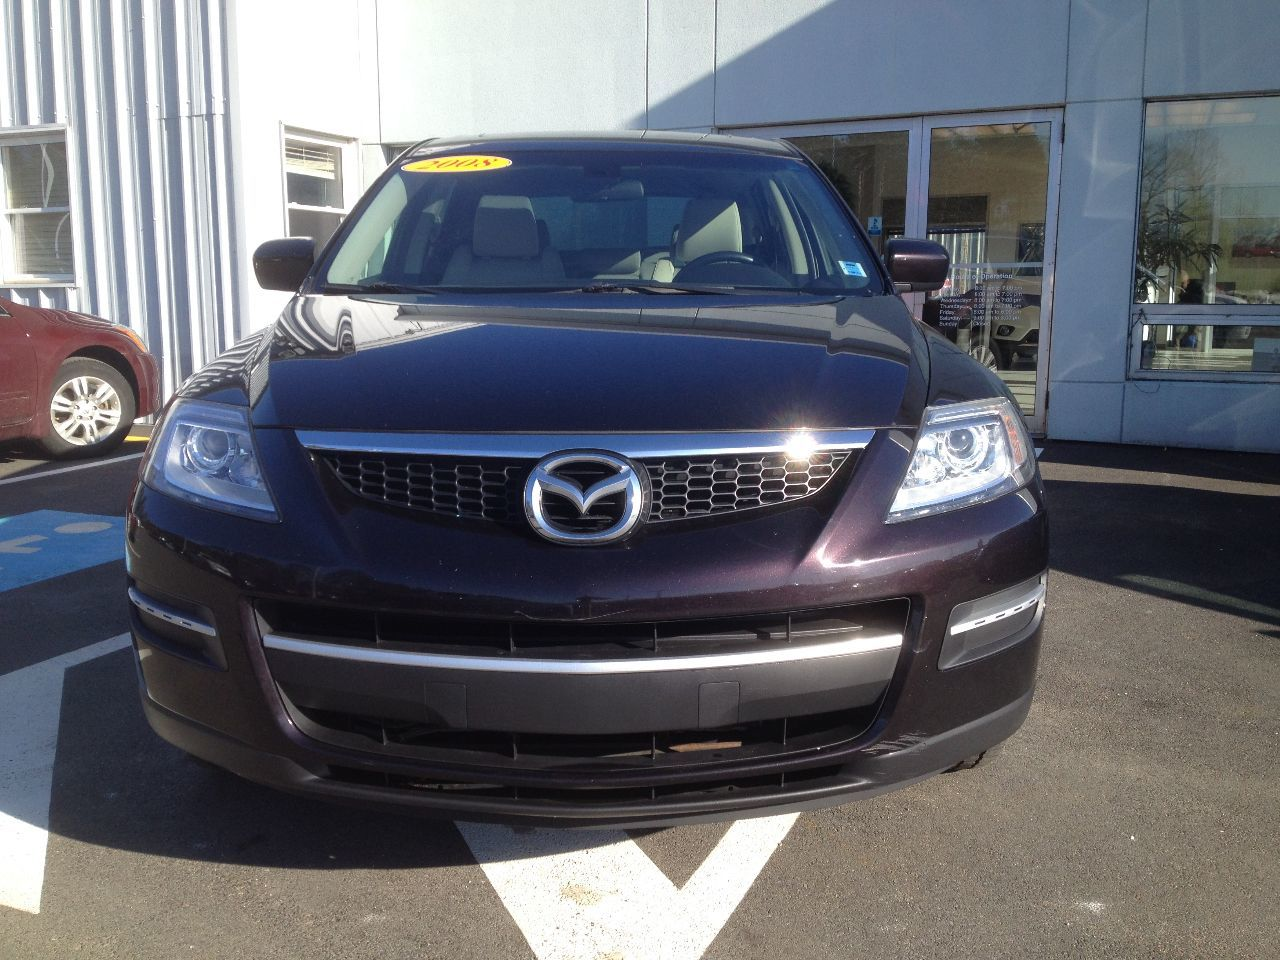 used 2008 mazda cx 9 in new germany used inventory lake view auto in new germany nova scotia. Black Bedroom Furniture Sets. Home Design Ideas